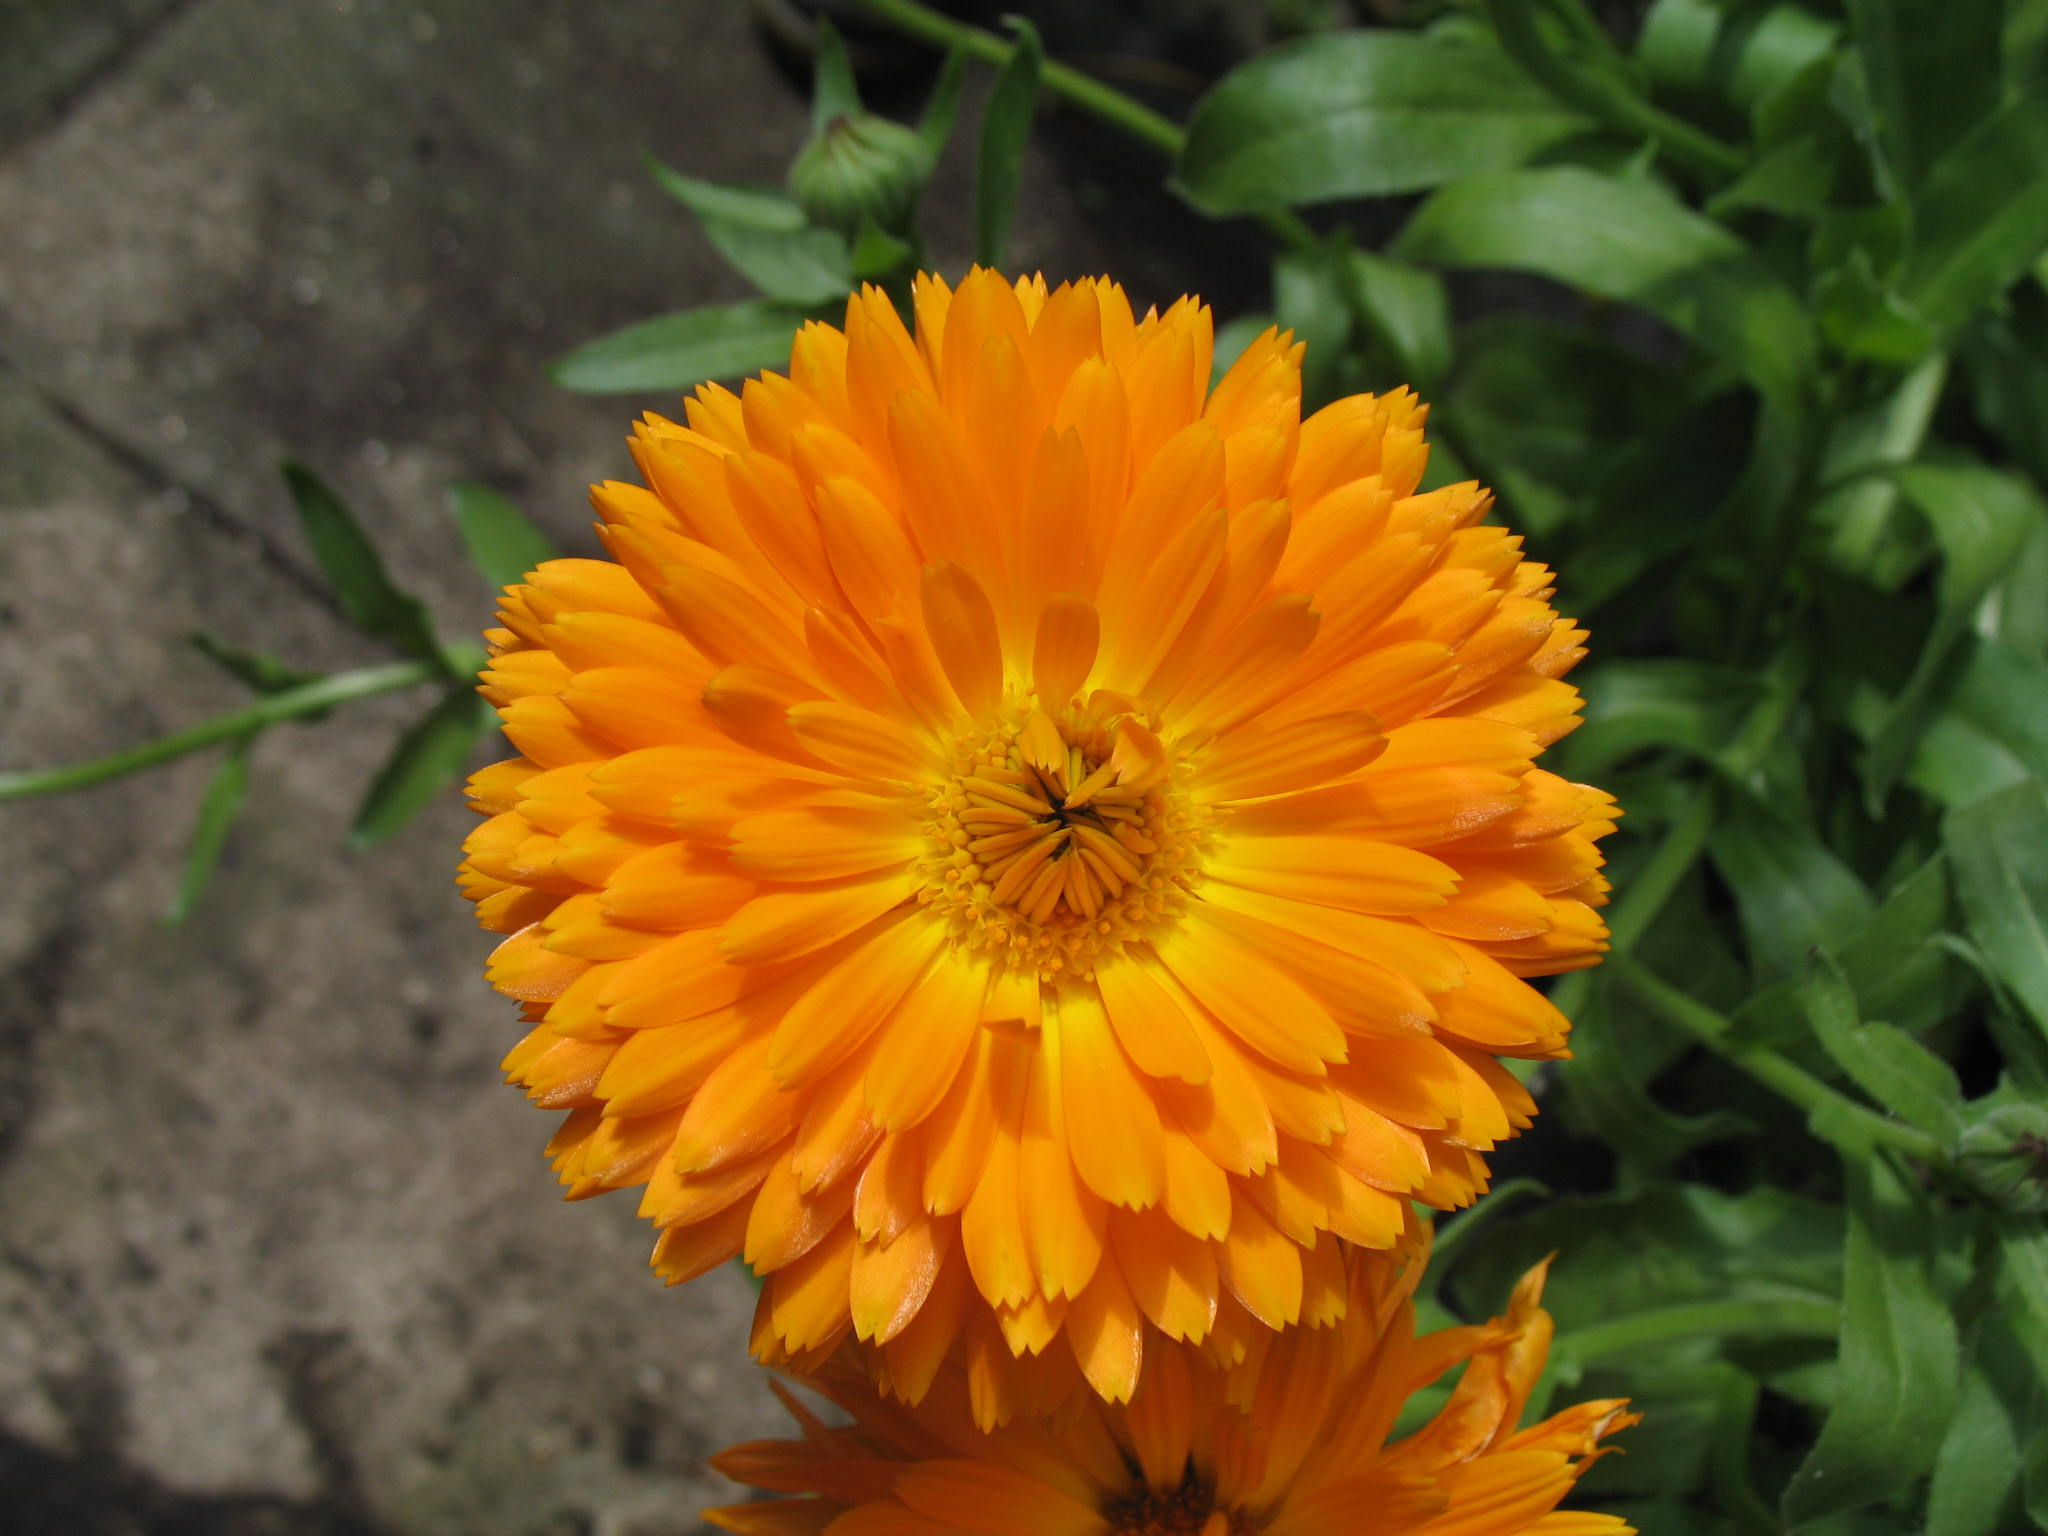 Calendula officinalis or English Marigold